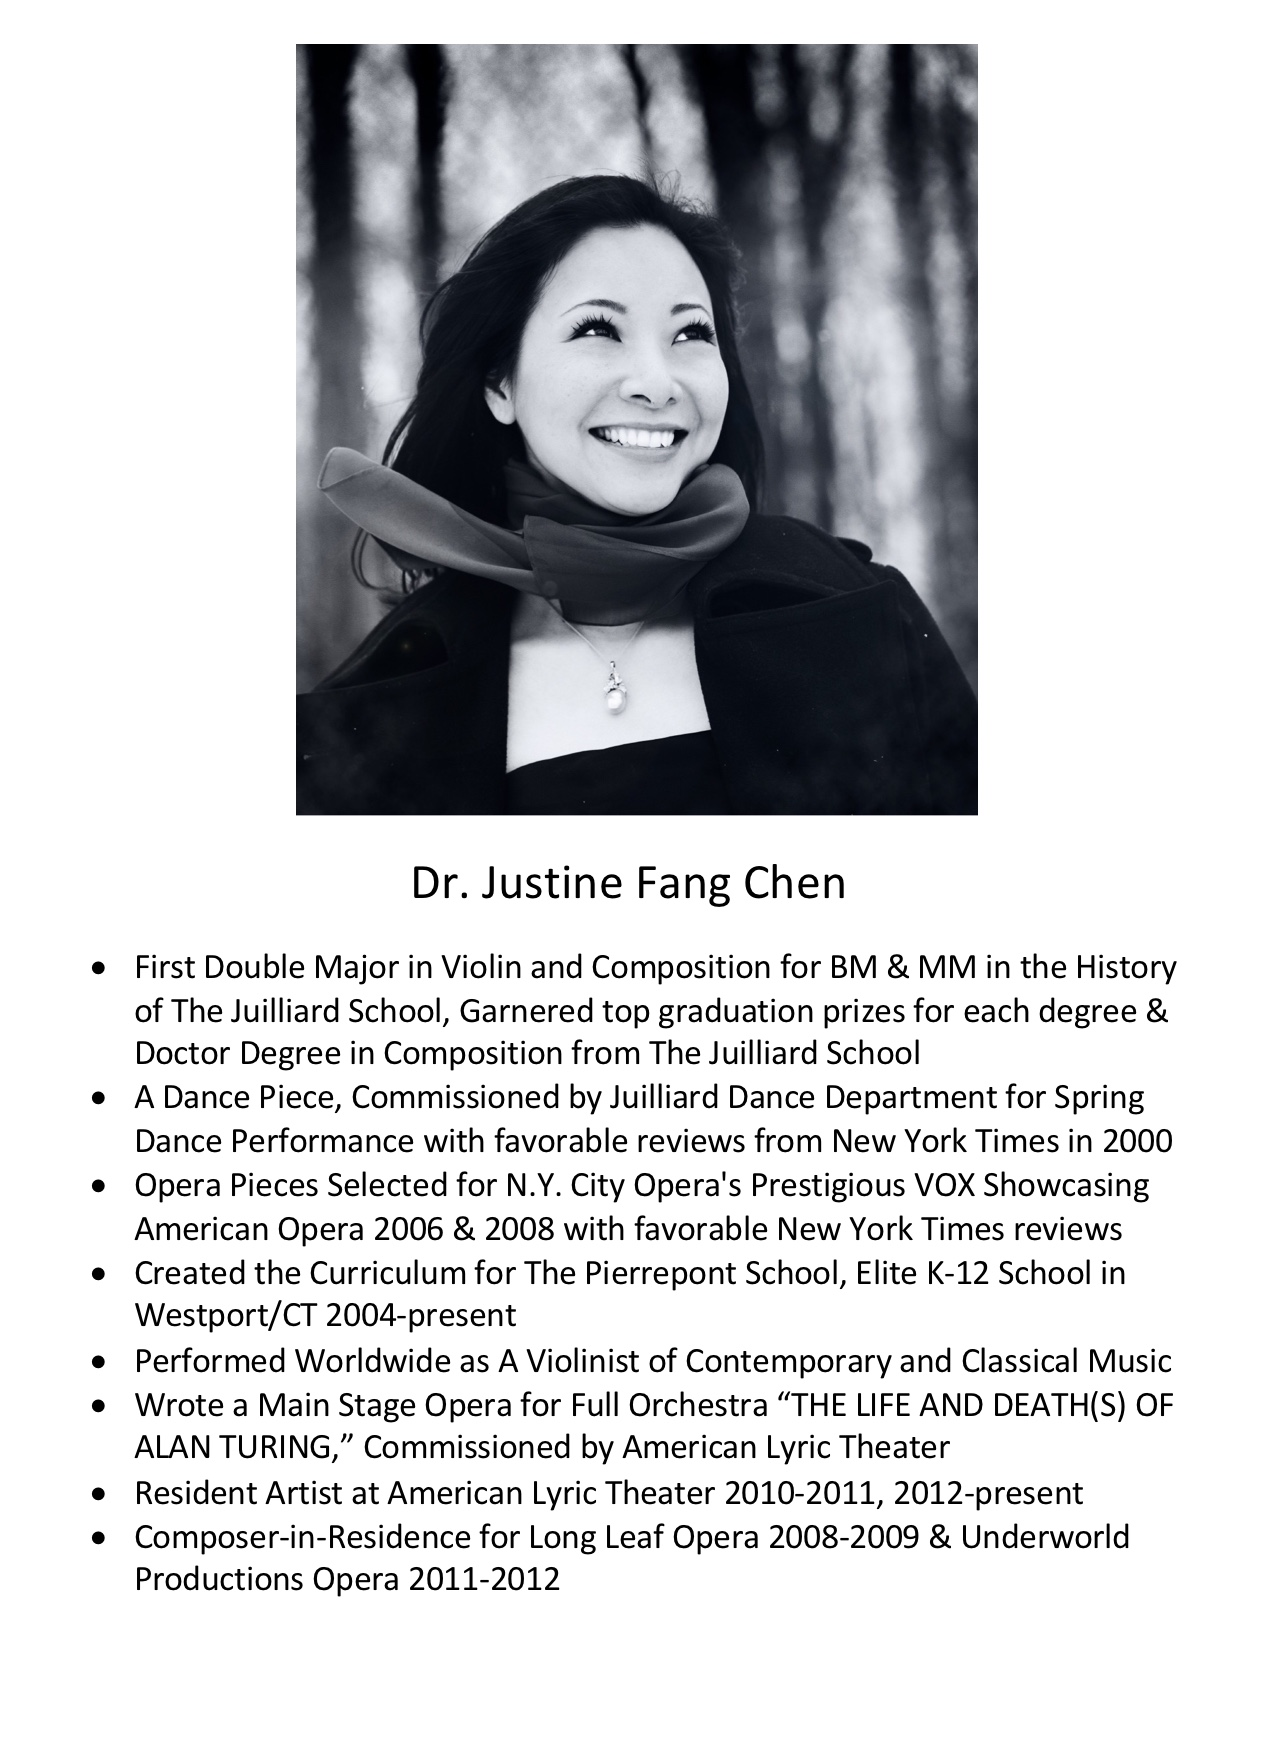 208. Dr. Justine Fang Chen